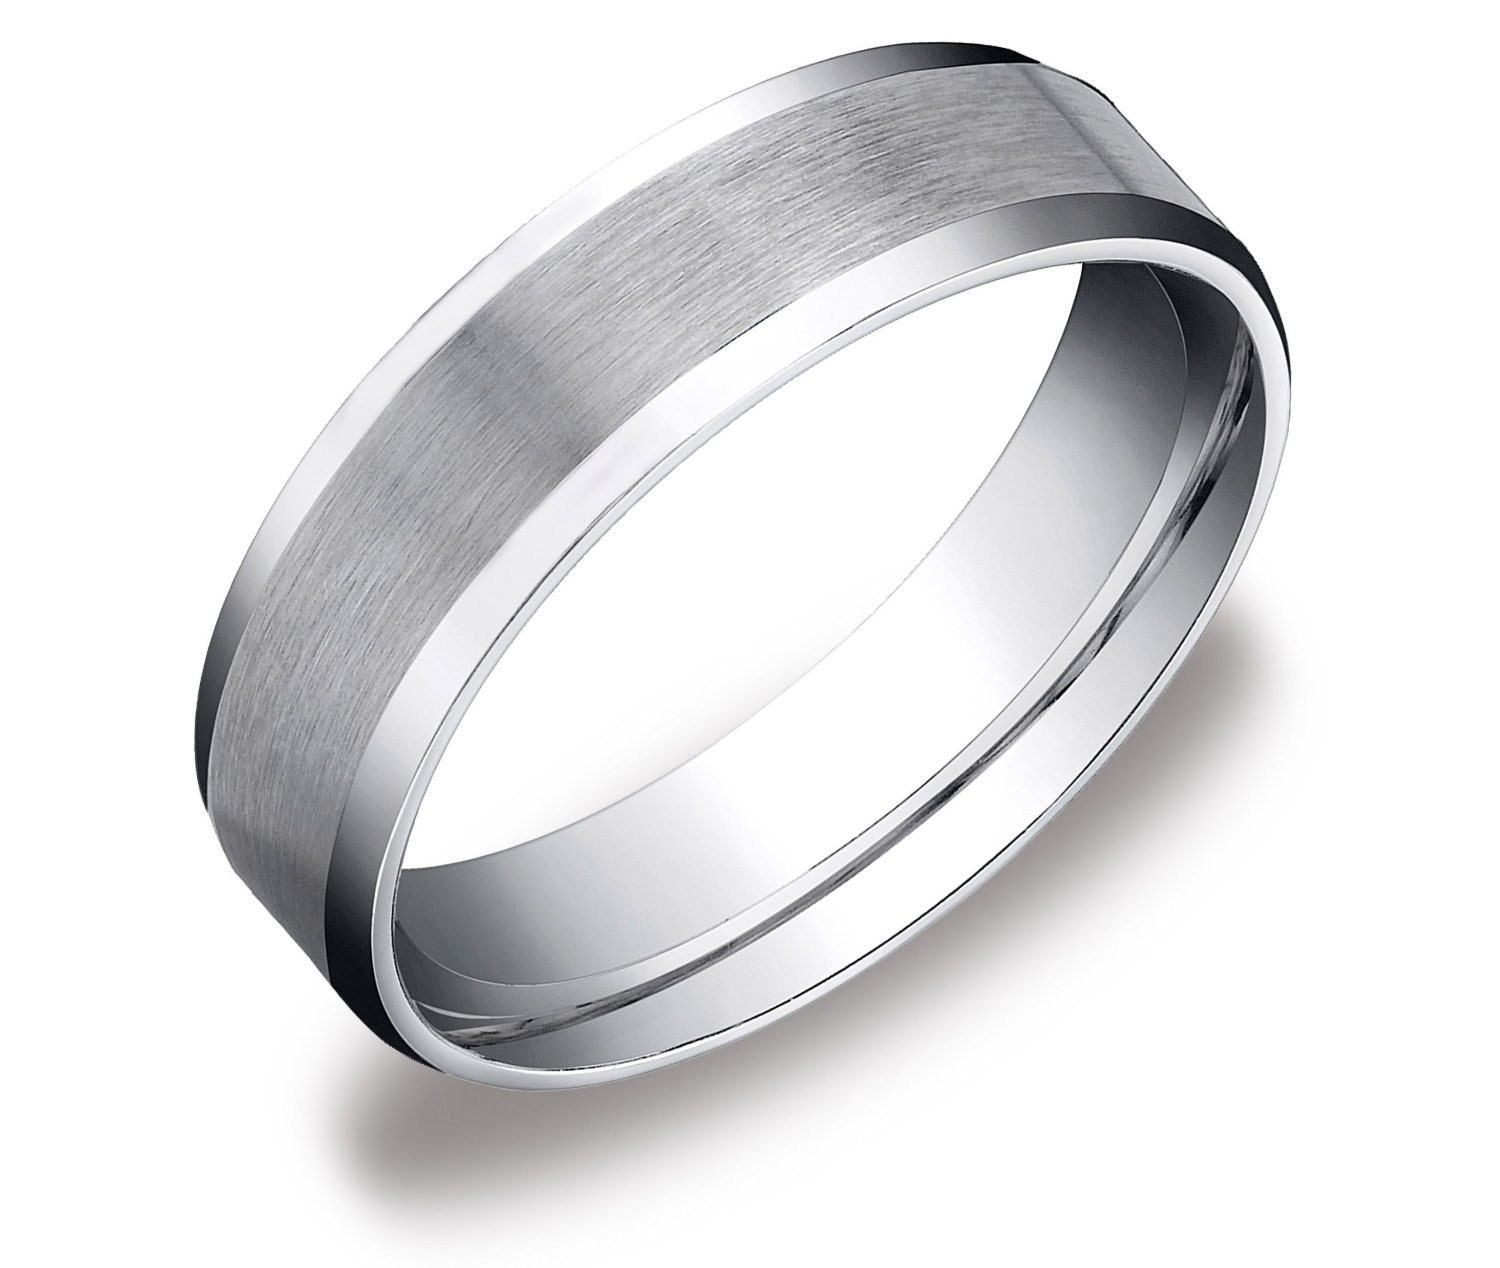 a band wedding irish bands handmade products platinum or for ring fullxfull man woman il shamrock